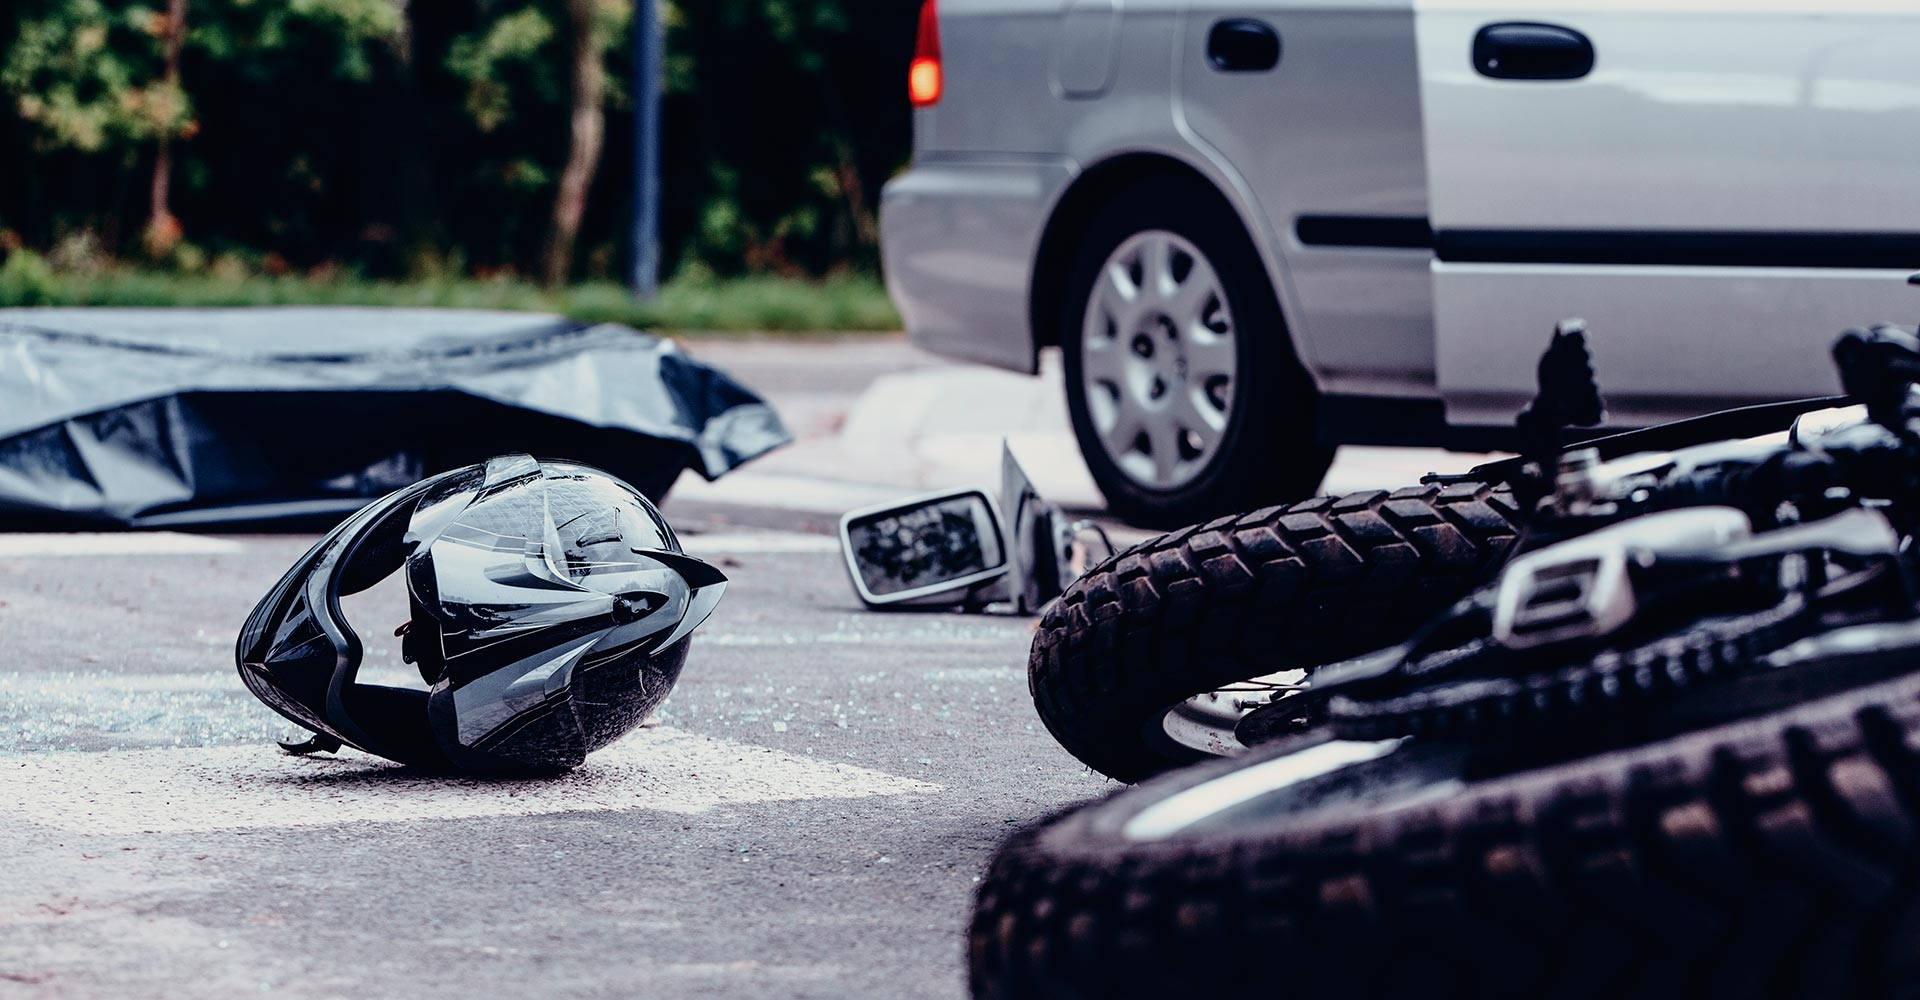 a helmet and a motorcycle lying on the road after a crash with a car